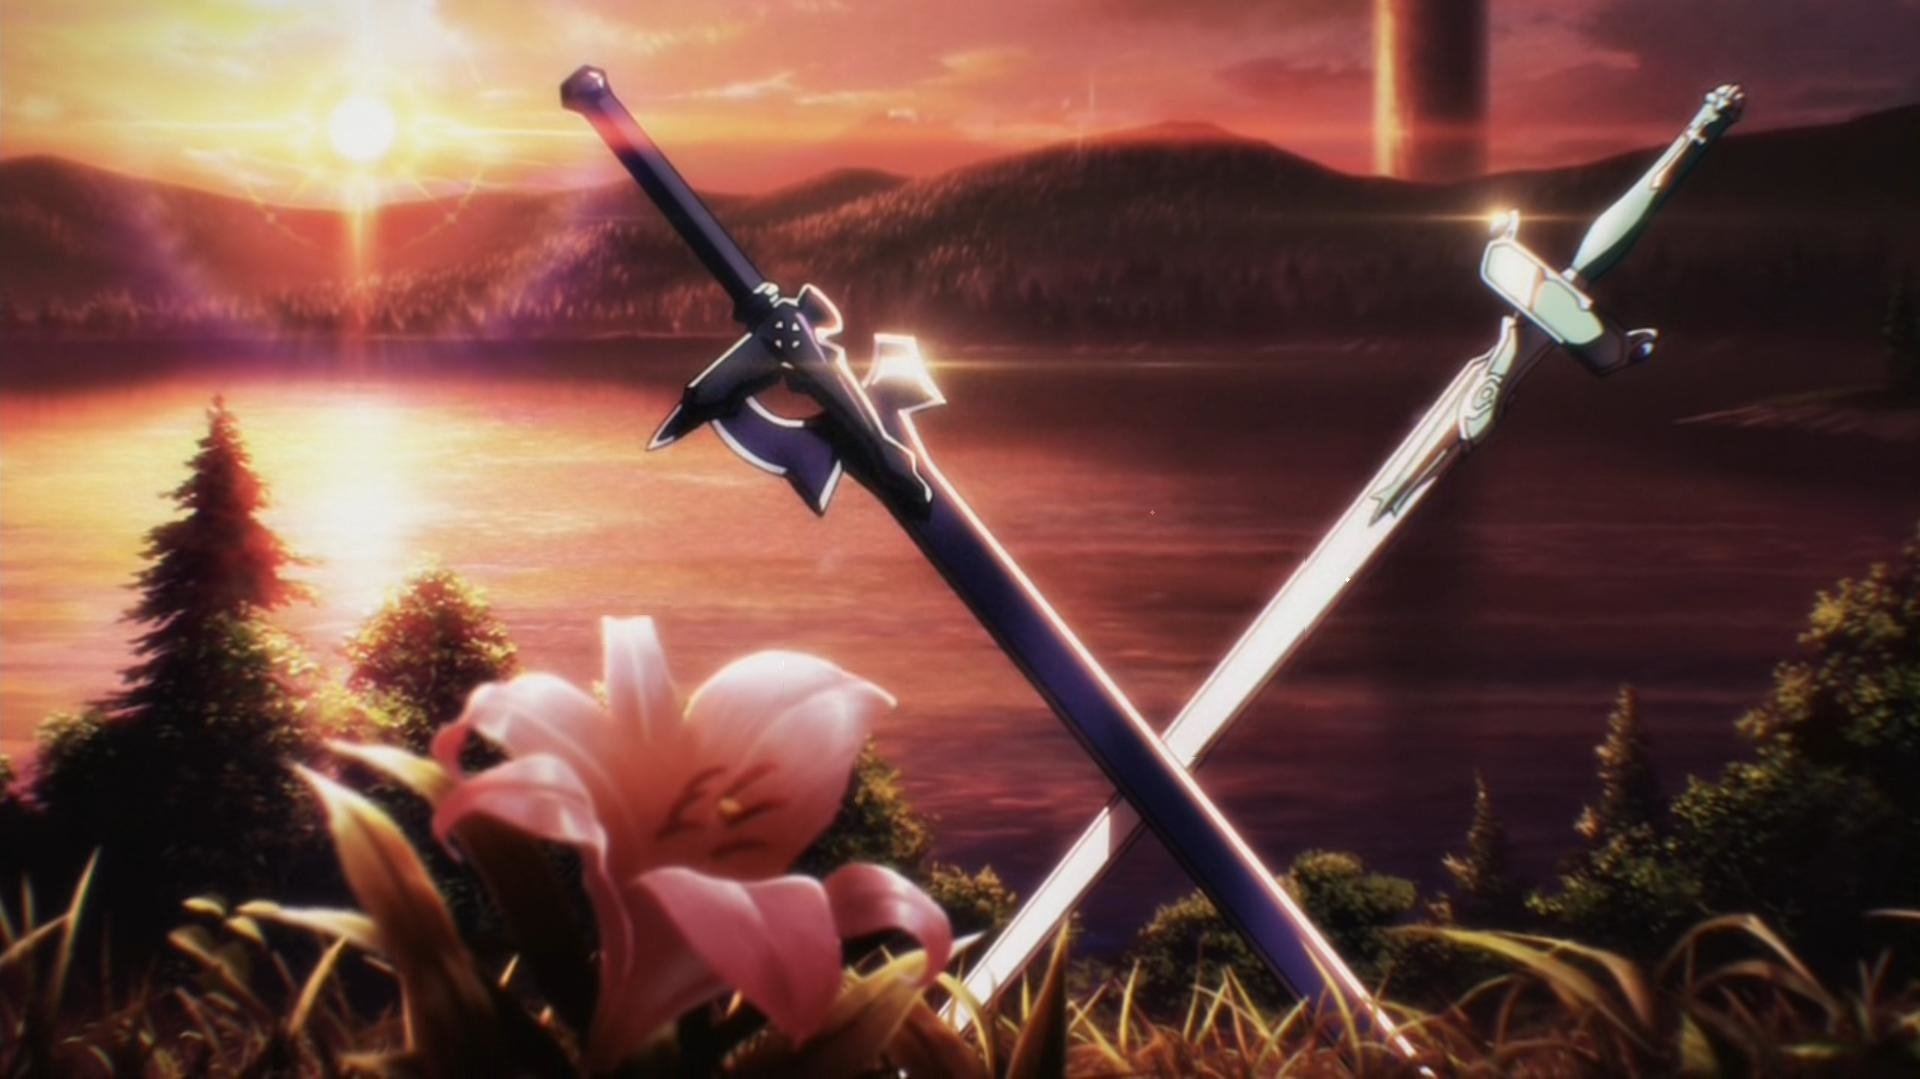 2347 Sword Art Online HD Wallpapers